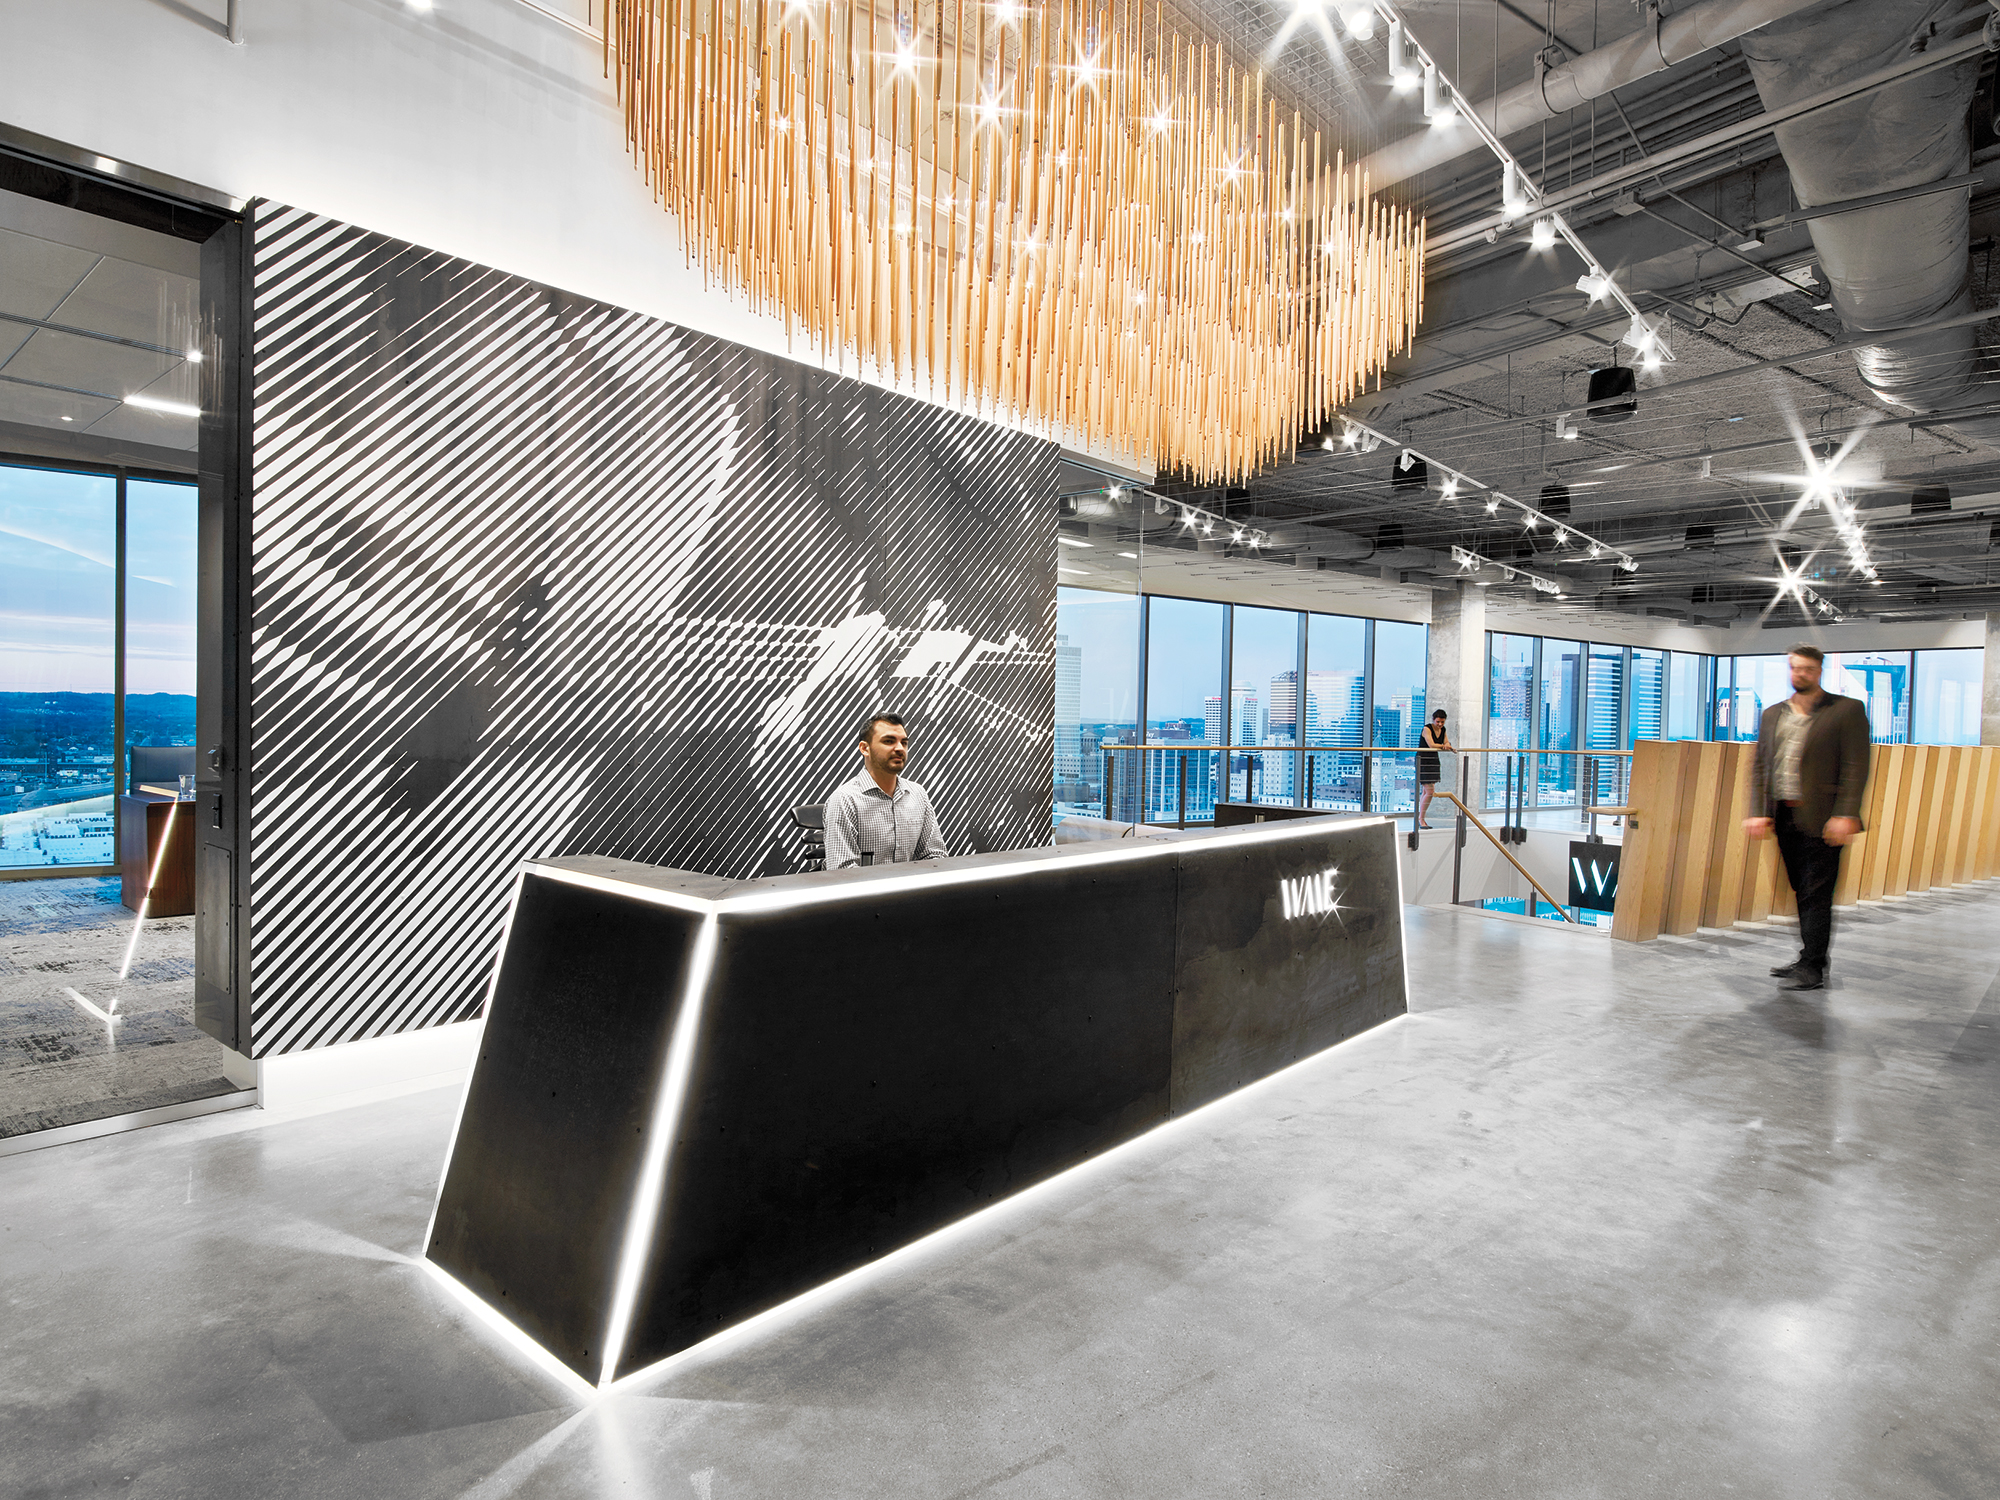 WME Agents And Star Clients Unite At Nashville Office By Hastings Architecture Associates